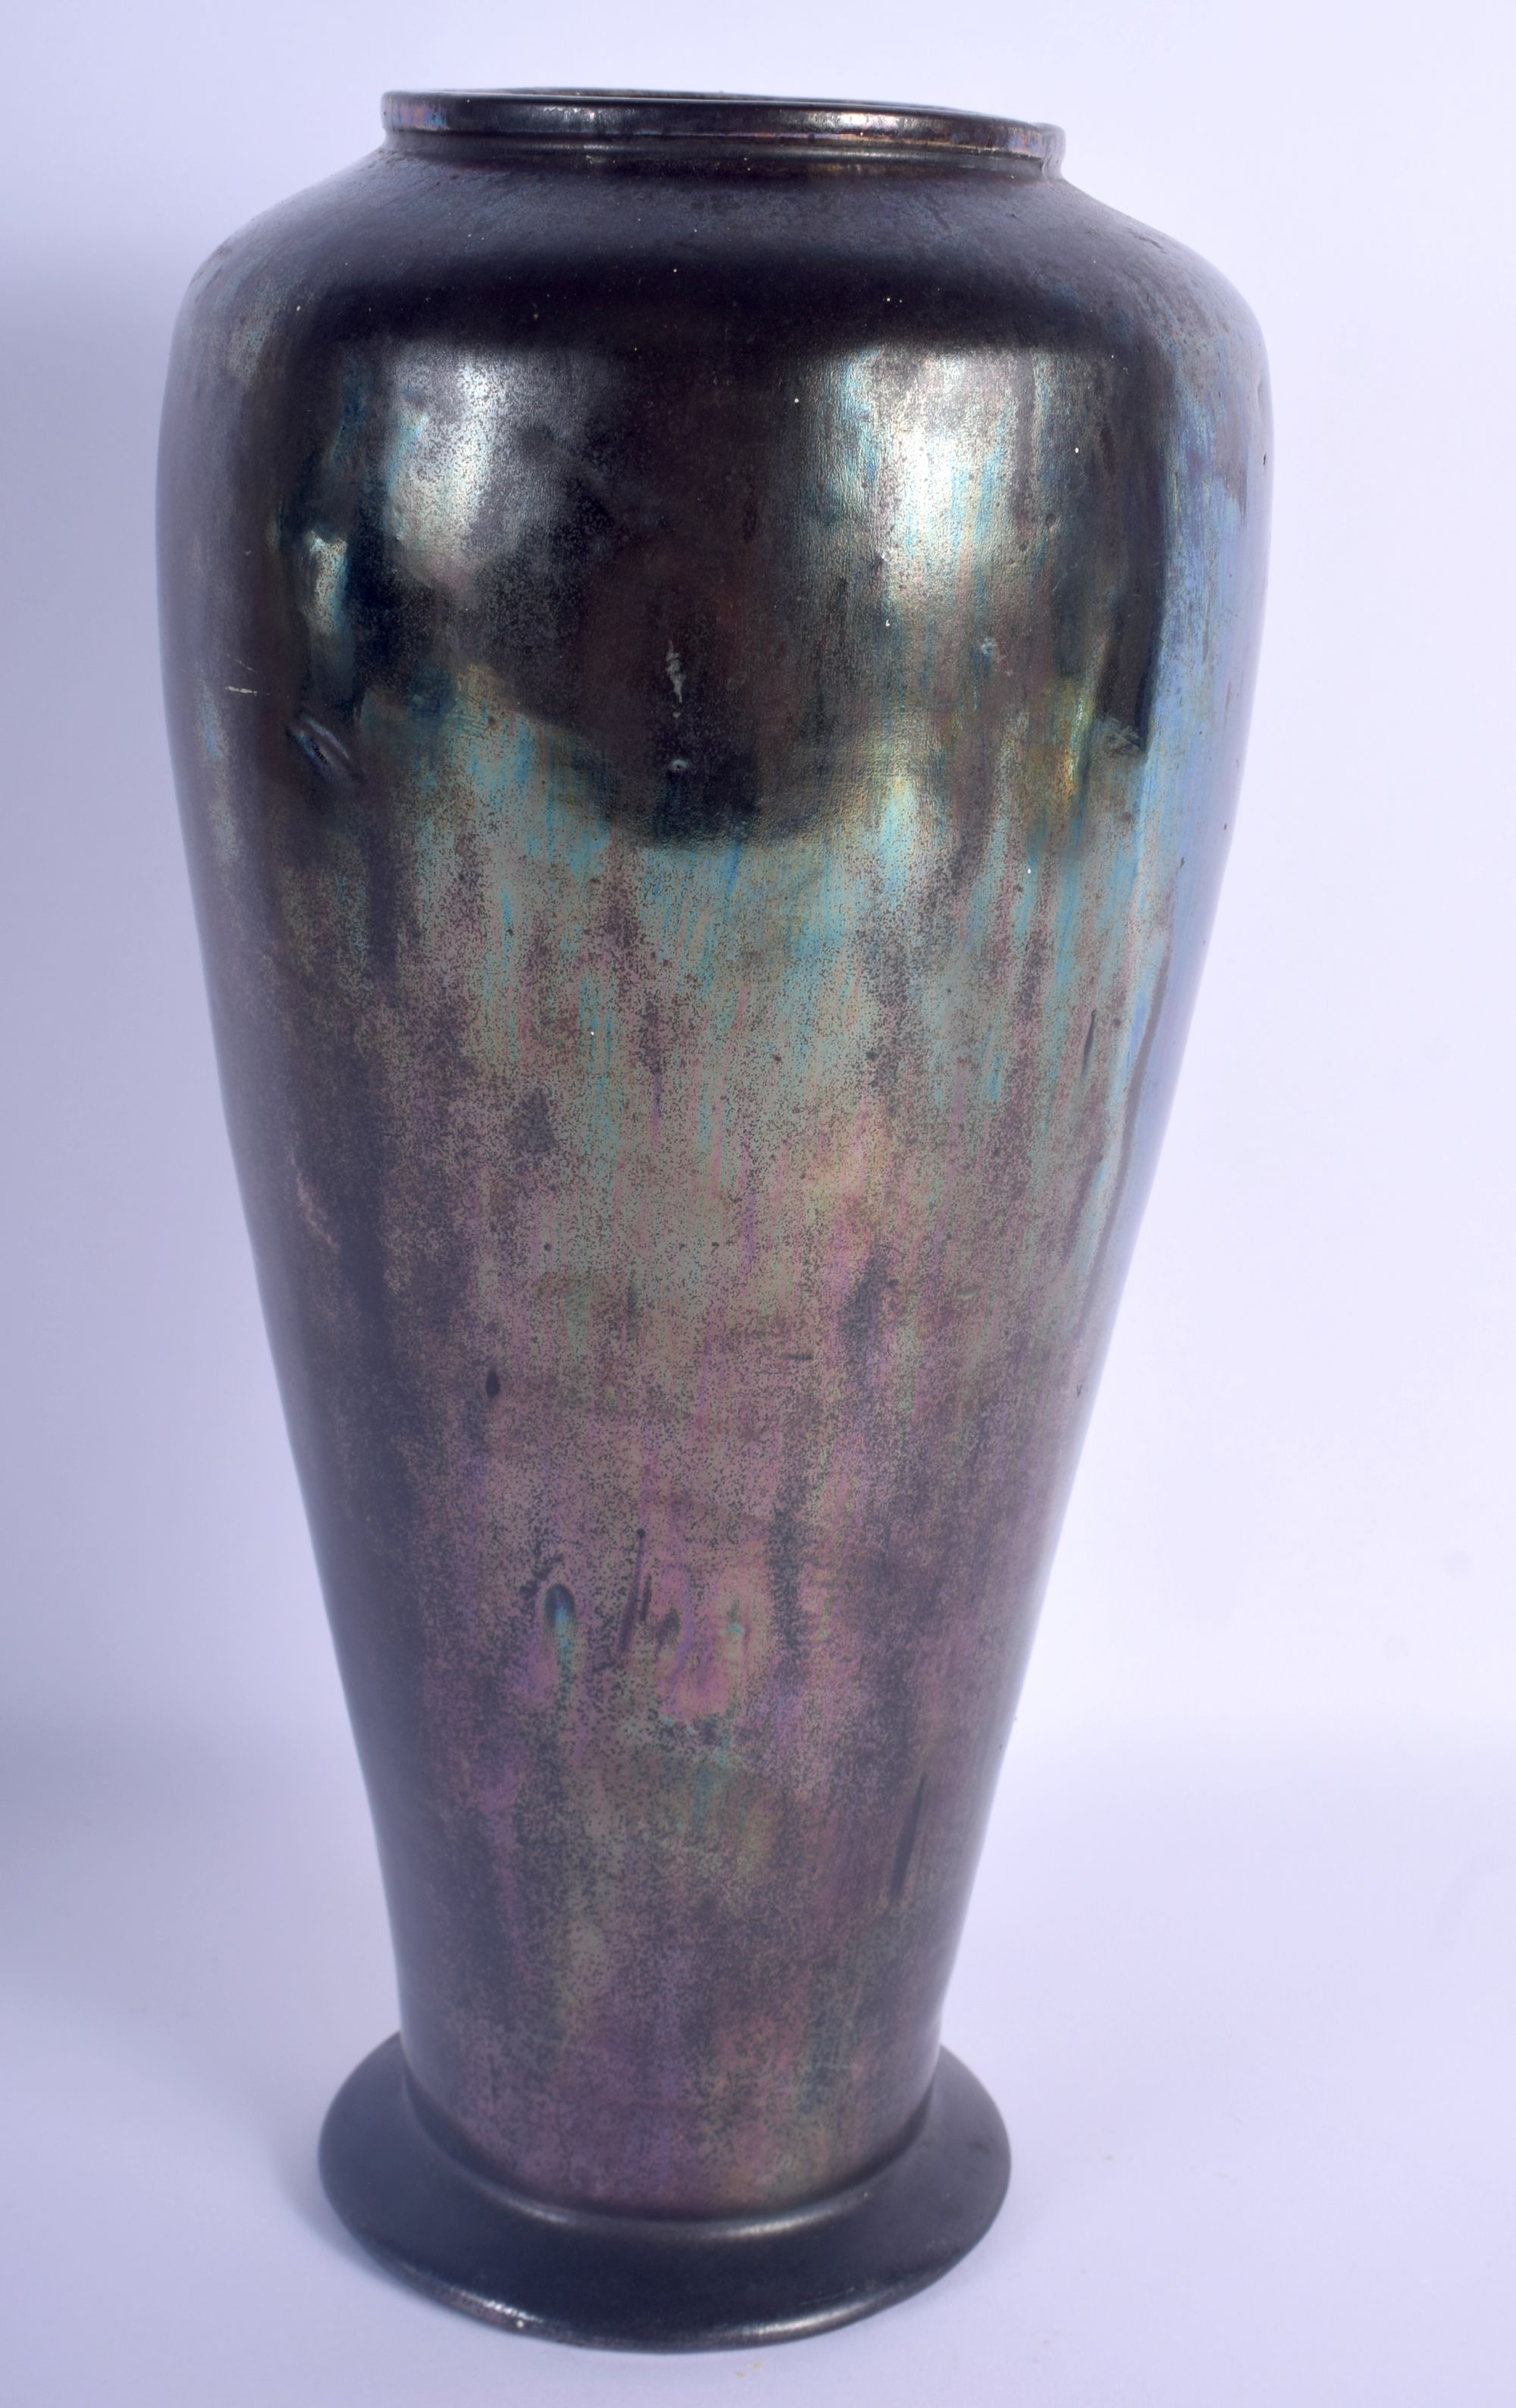 AN UNUSUAL EARLY 20TH CENTURY IRIDESCENT FAVRILLE TYPE POTTERY VASE in the manner of Tiffany & Co. 3 - Image 2 of 3